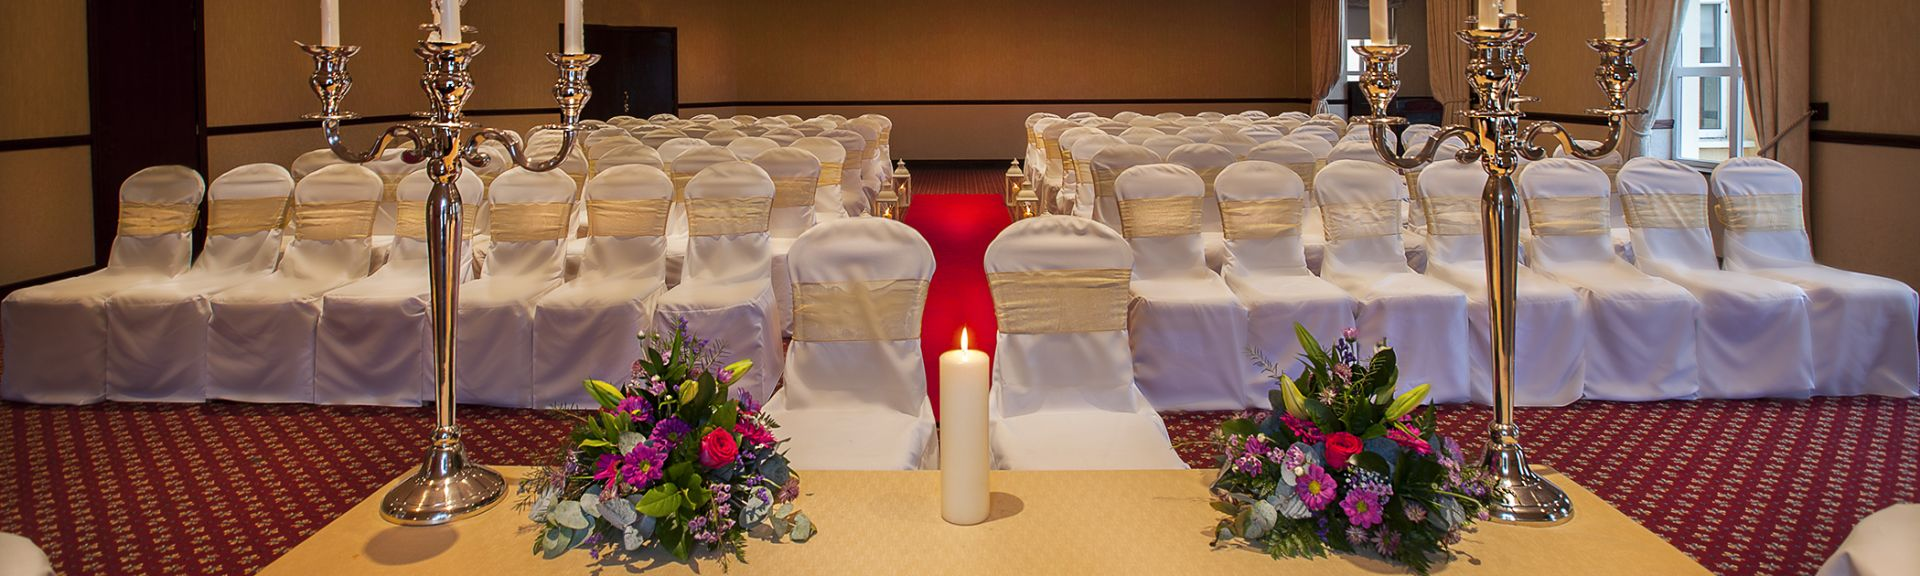 Civil Ceremonies Seven Oaks Hotel